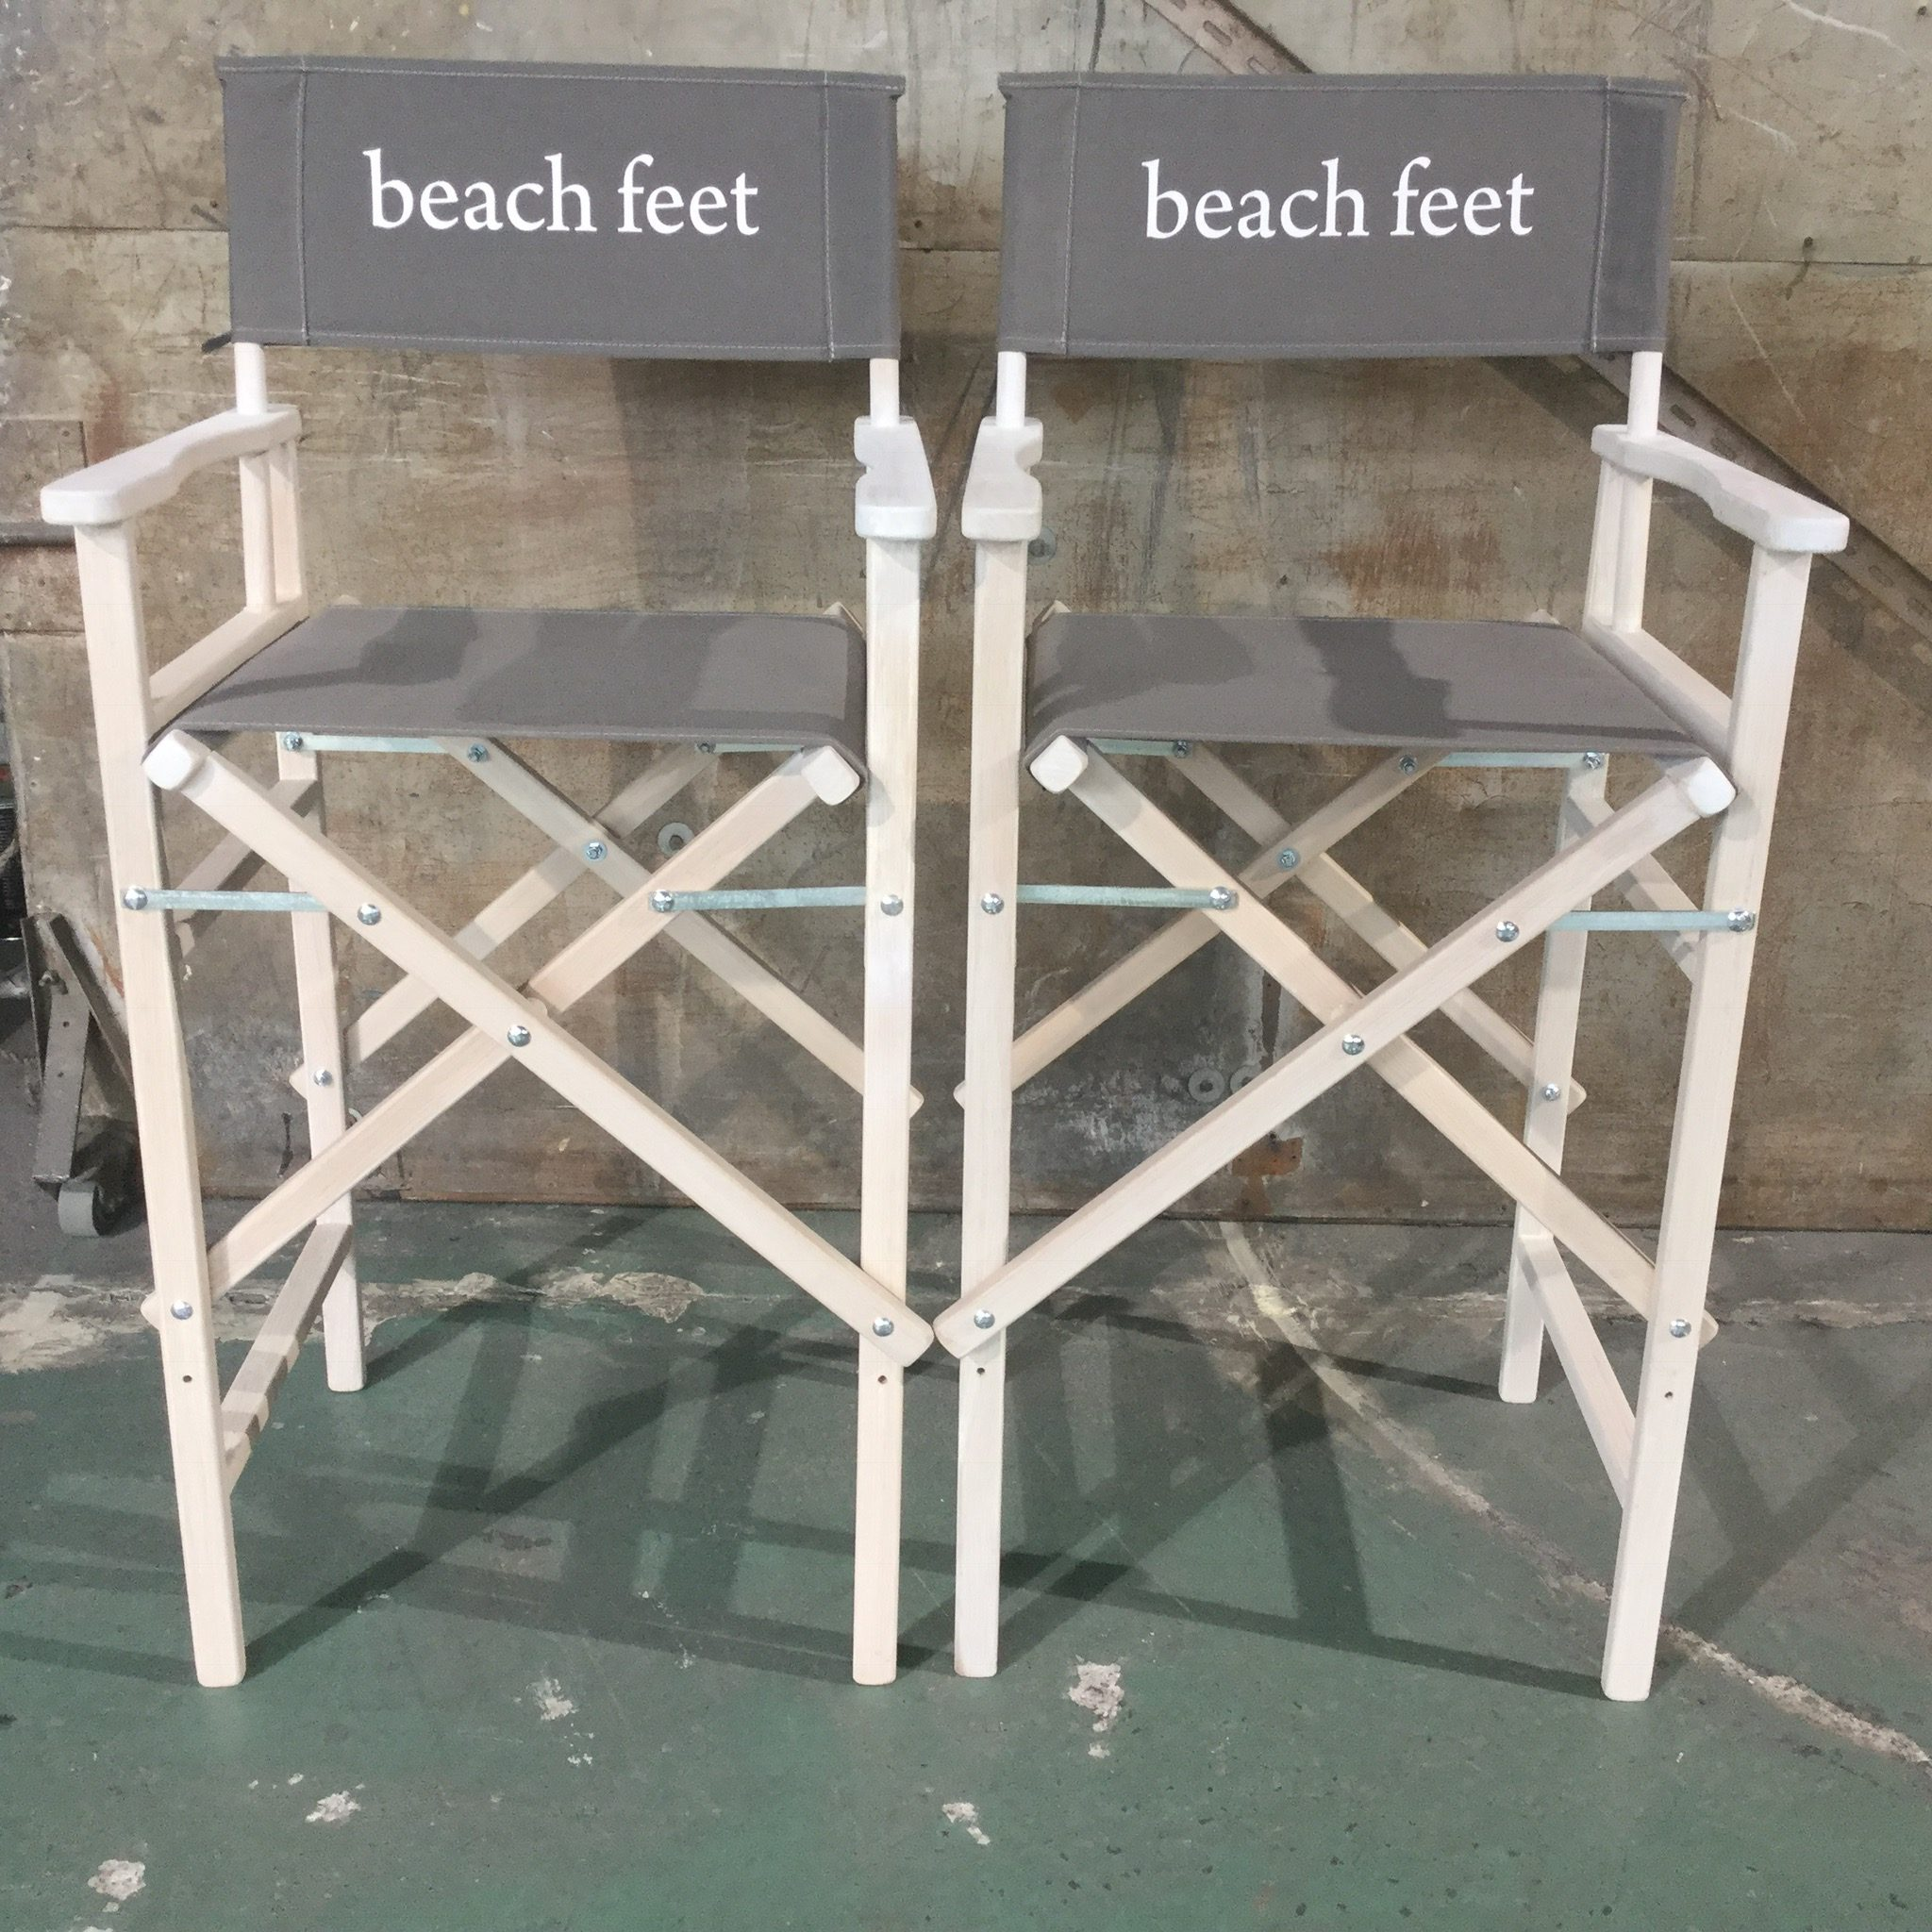 Make-up-Chair-beach-feet